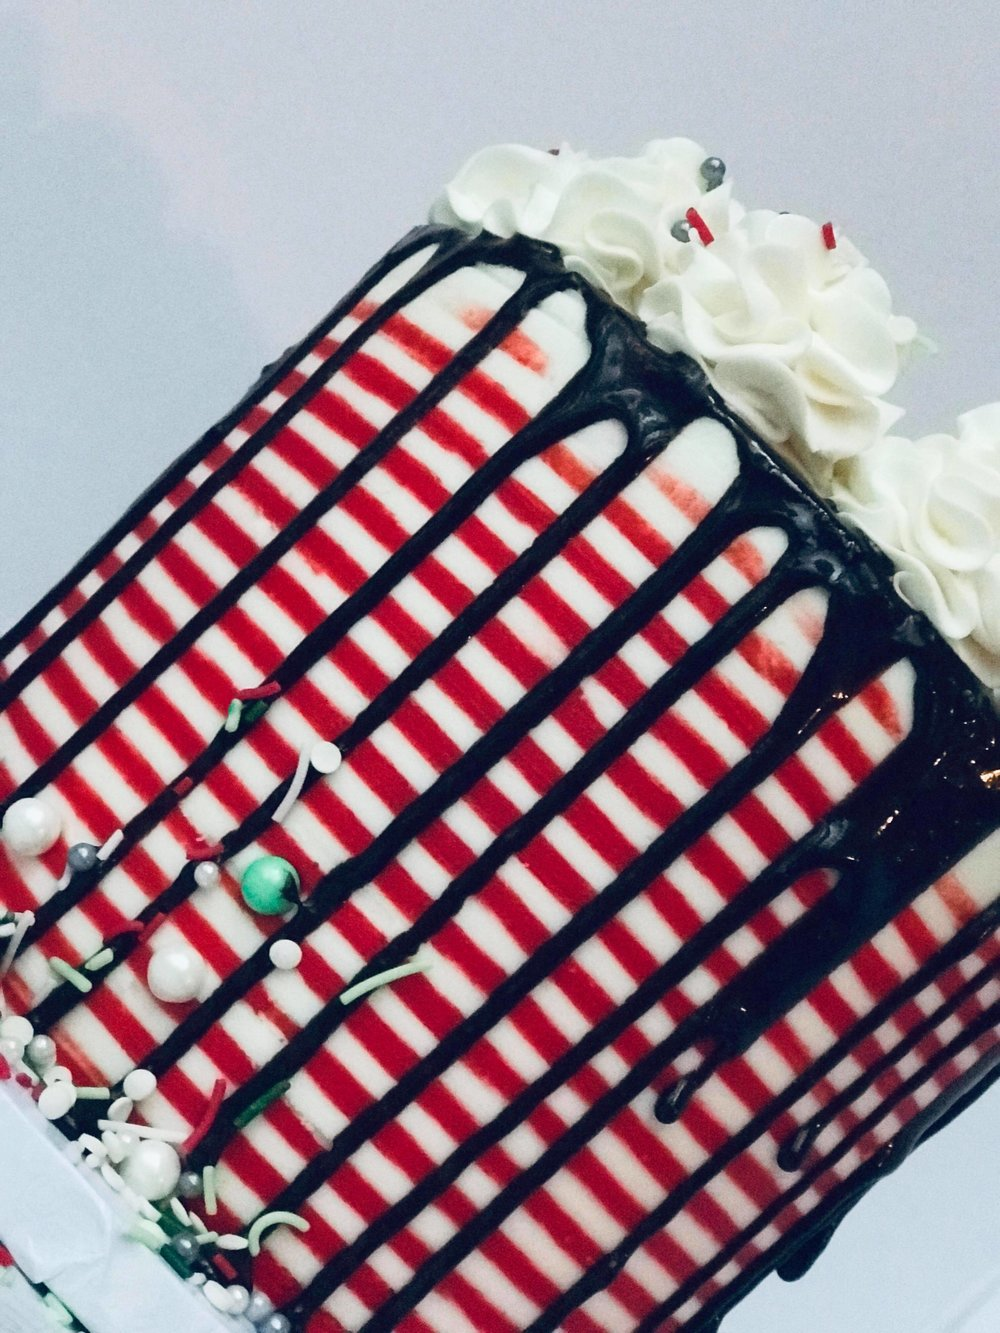 Candy Cane Stripe Cake - $50 6 inch tall$65 8 inch tall